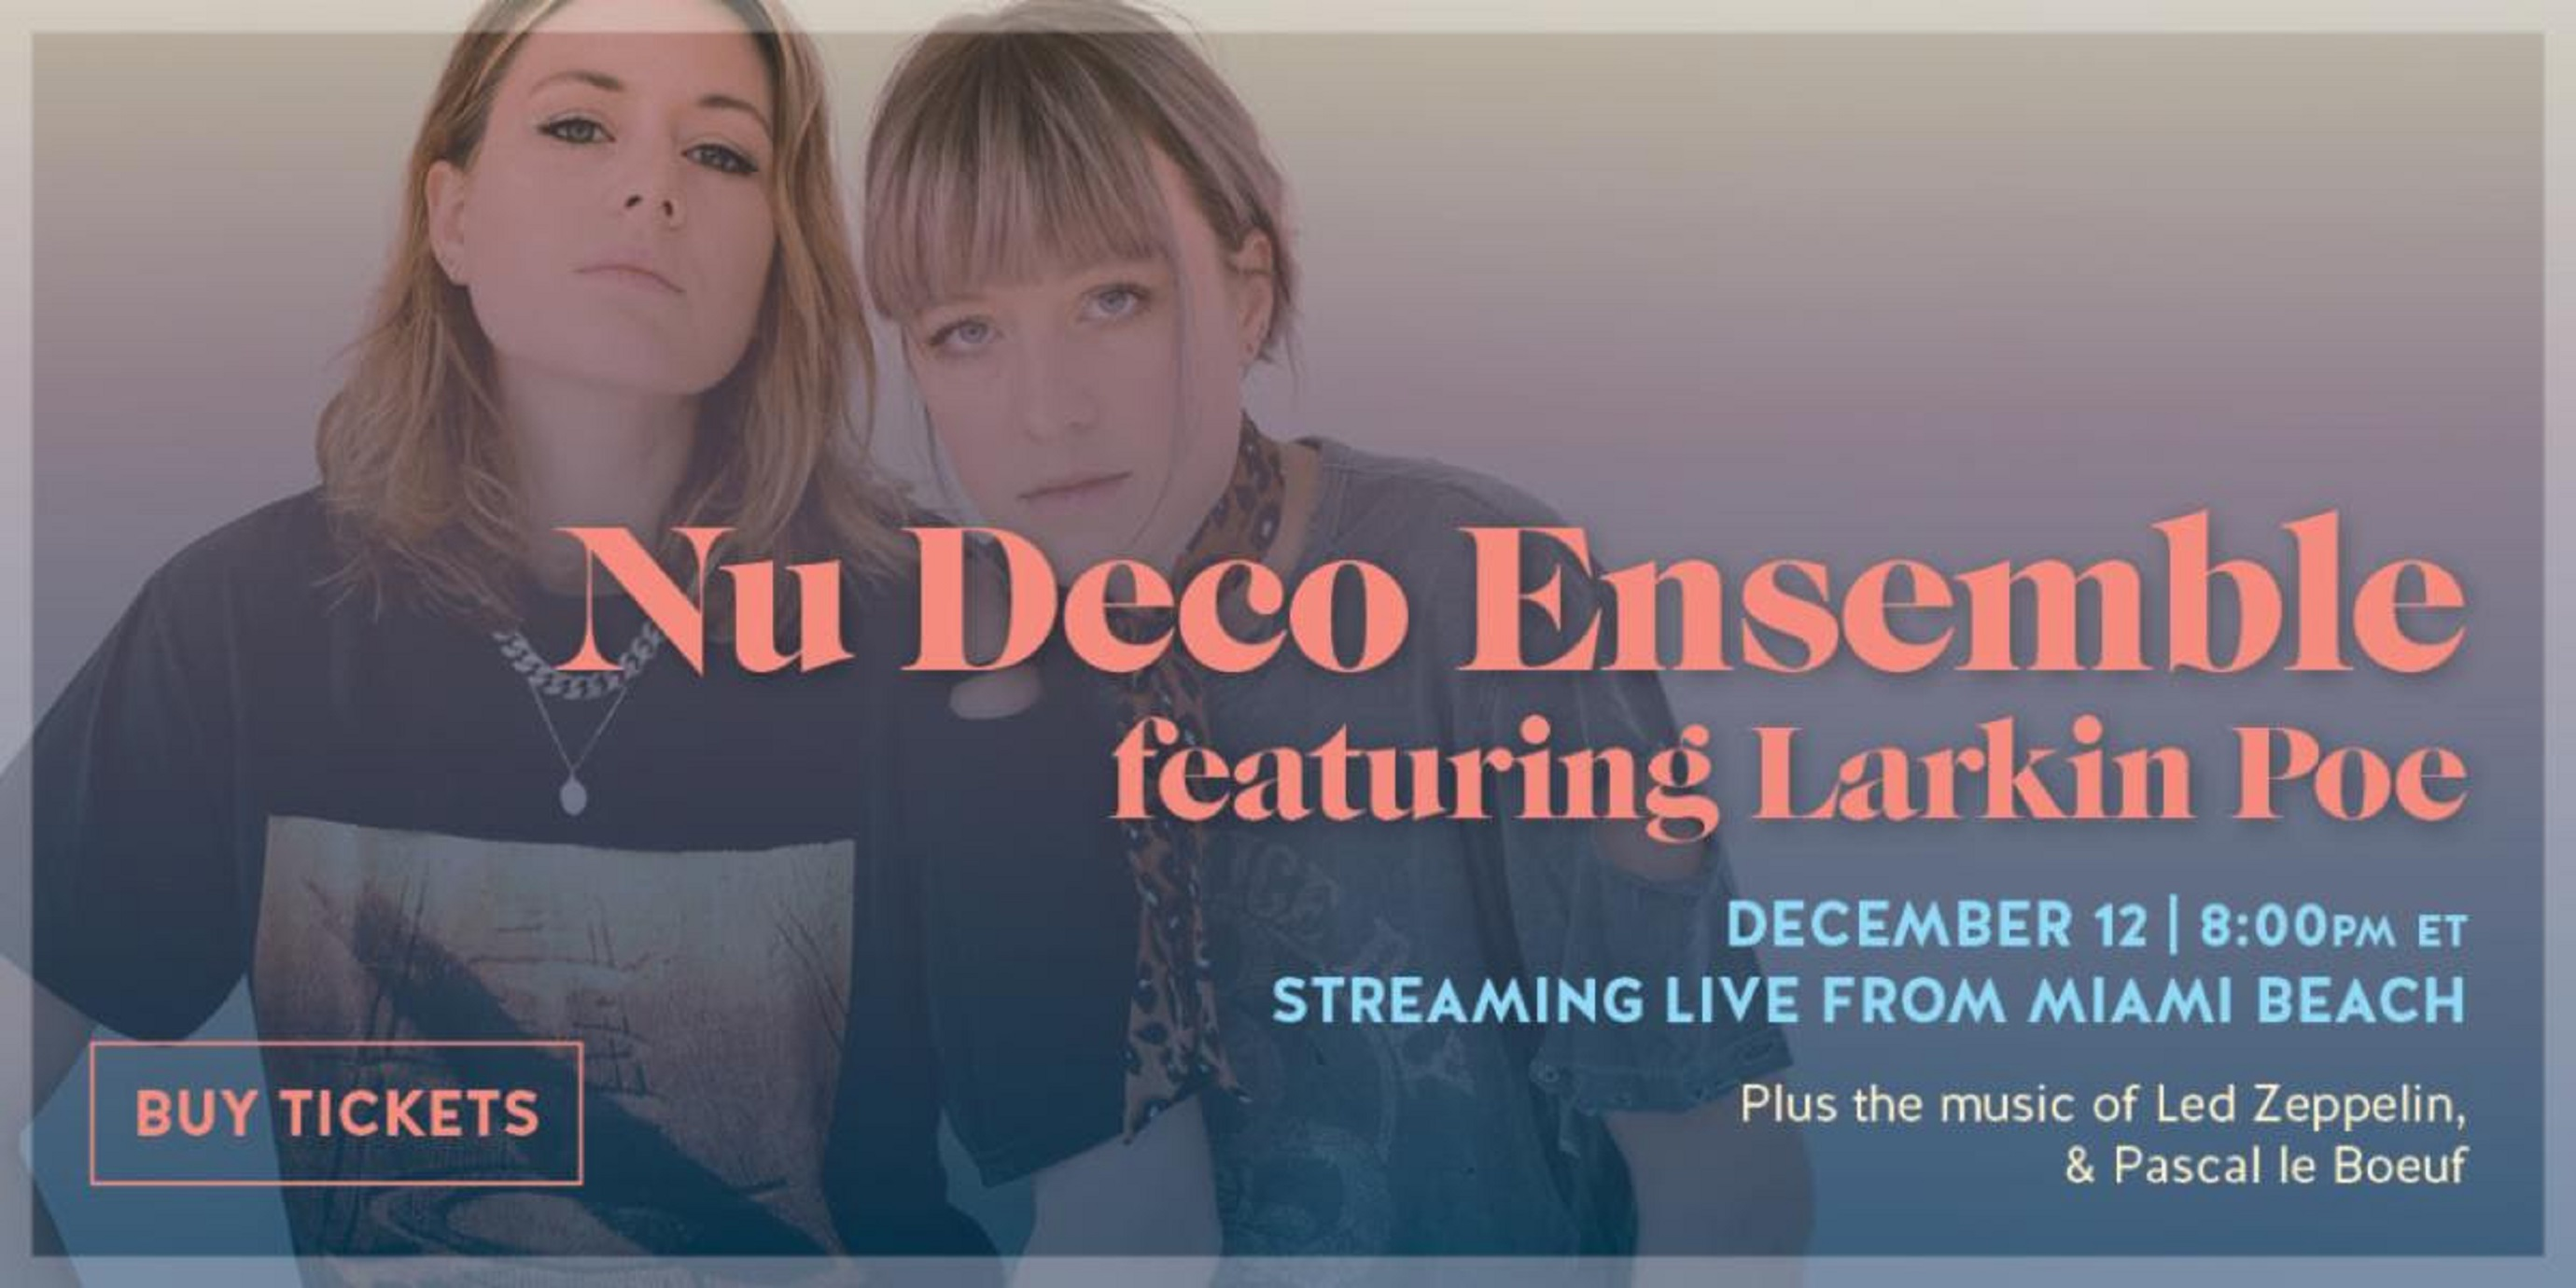 Larkin Poe to join Nu Deco Ensemble for live stream concert